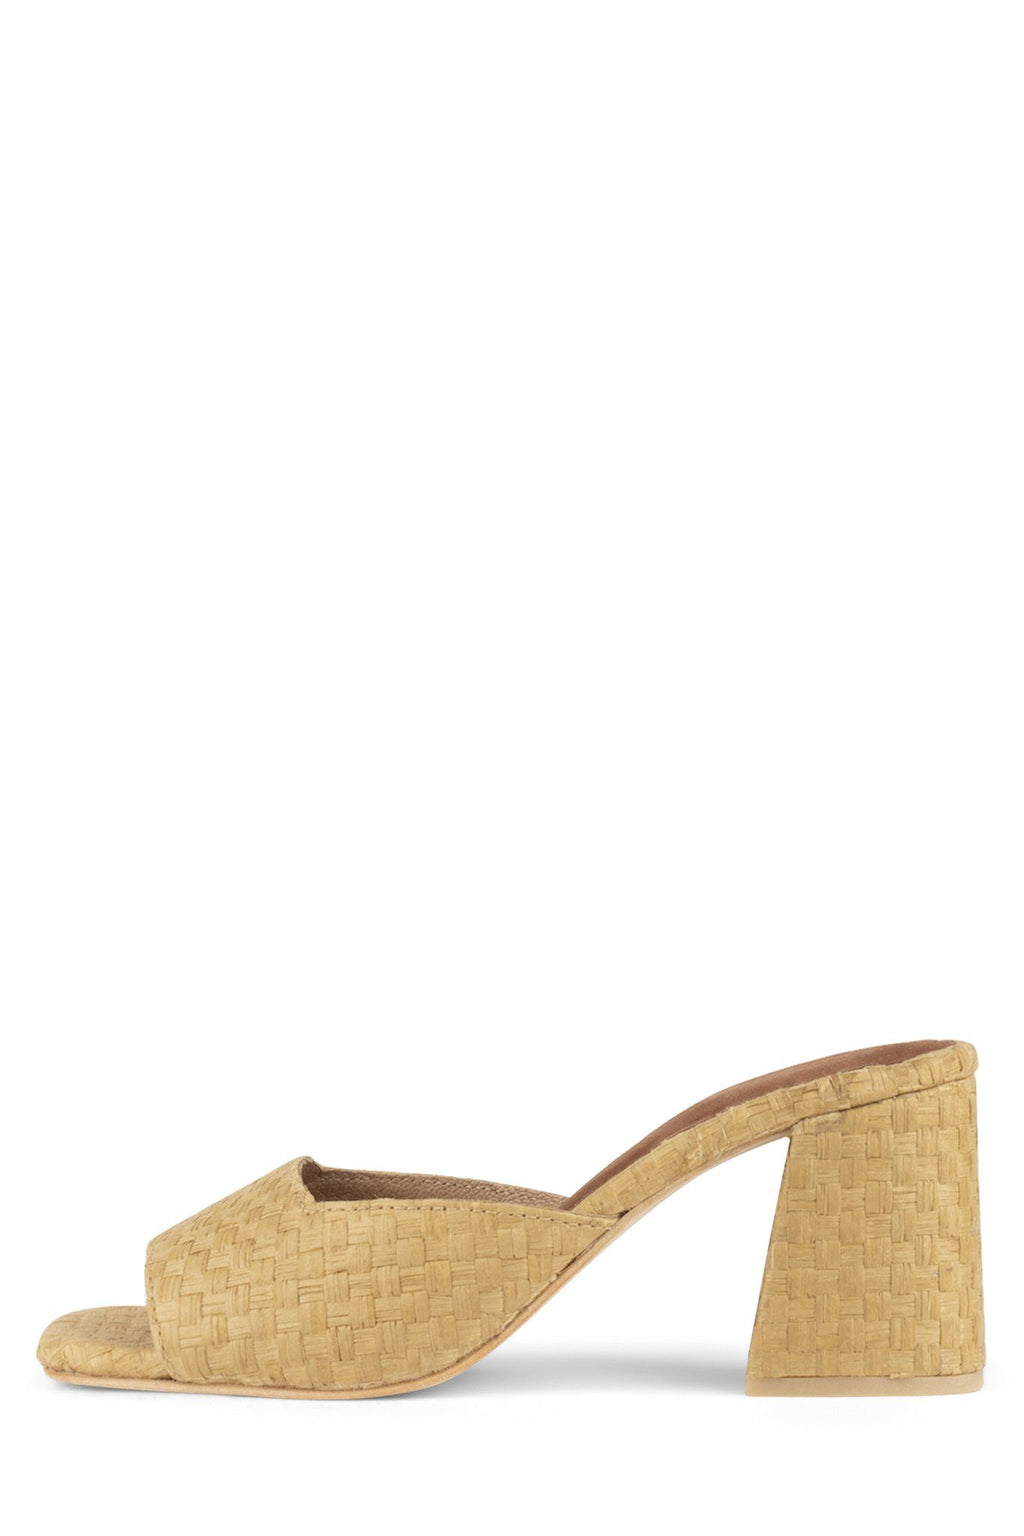 MELANGE-2 Heeled Sandal Jeffrey Campbell Natural 2 6